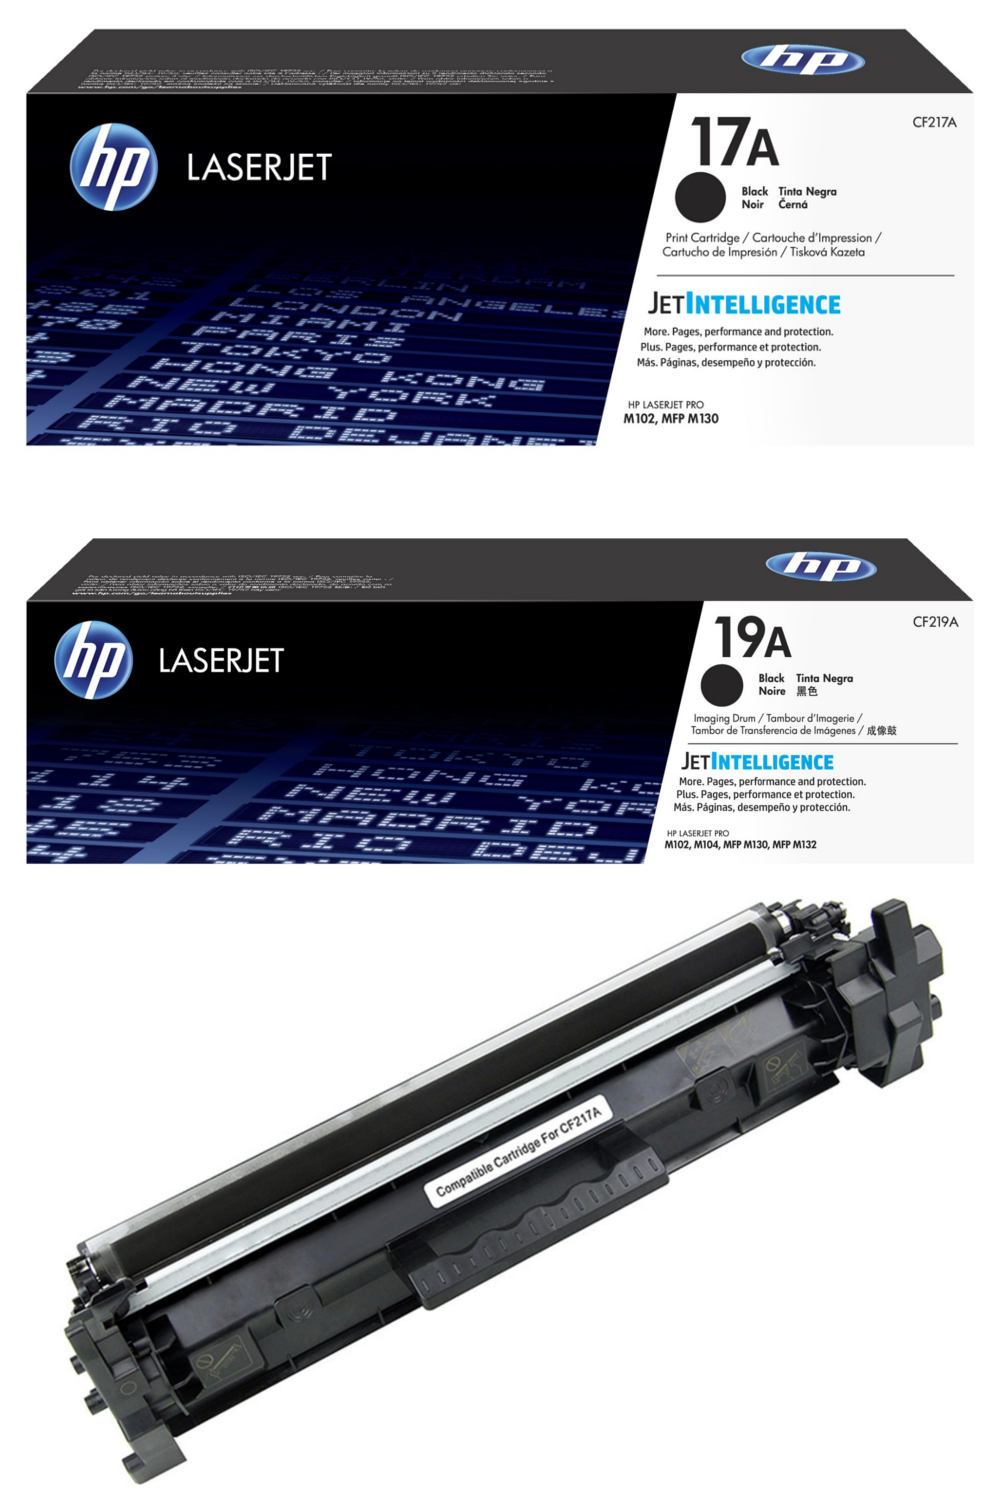 HP 17A CF217A Original Black Toner Cartridge & HP 19A CF219A Original Black LaserJet Imaging Drum & Compatible HP 17A CF217A Black Toner Cartridge